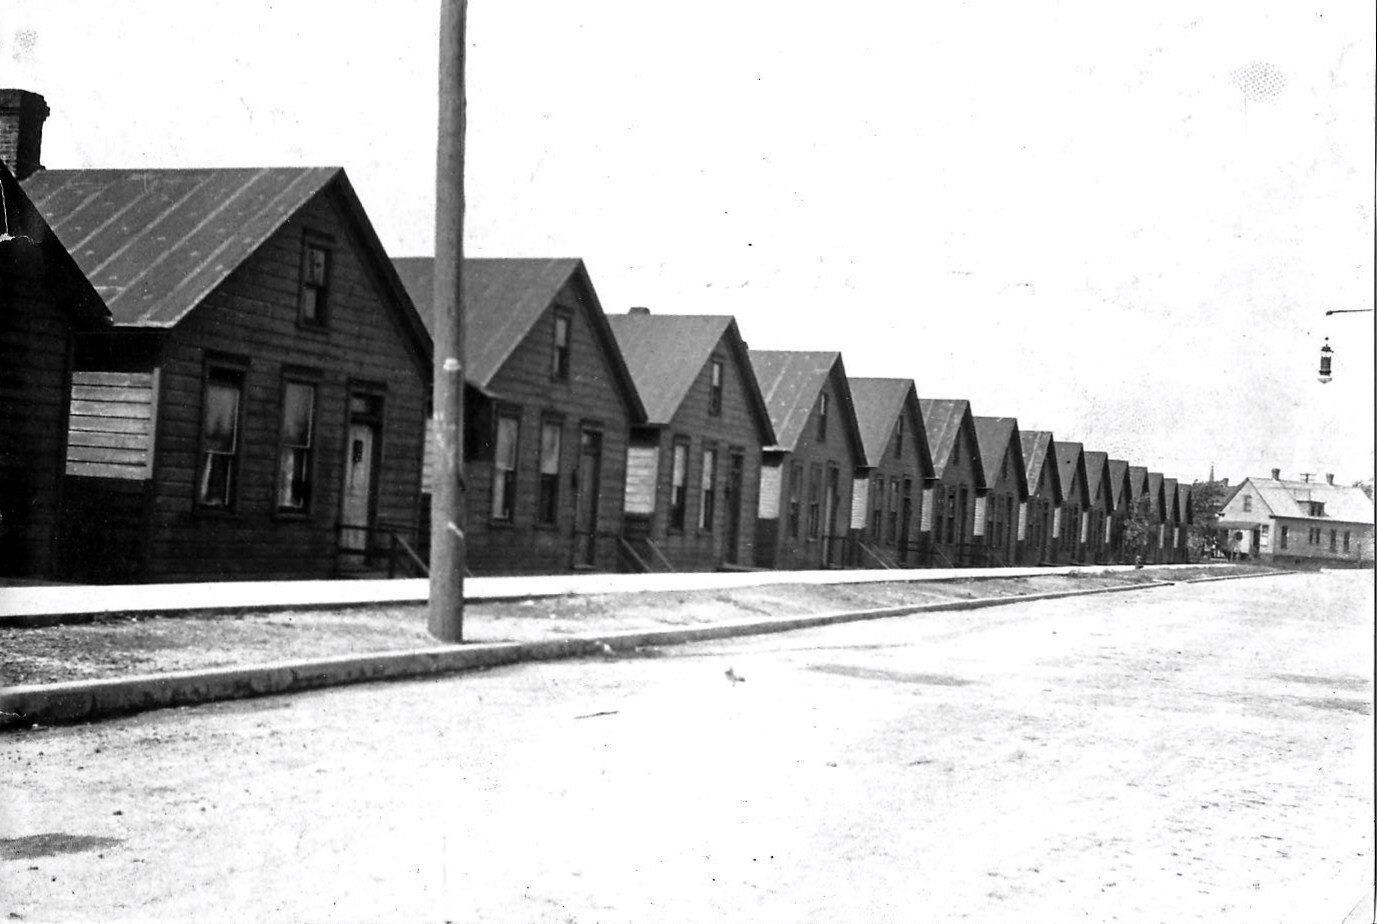 This is the site where the Whiting Community Center now stands. There were twenty small cottages here in 1923, on what was then called Short Street. All were torn down to make room for the Community Center.